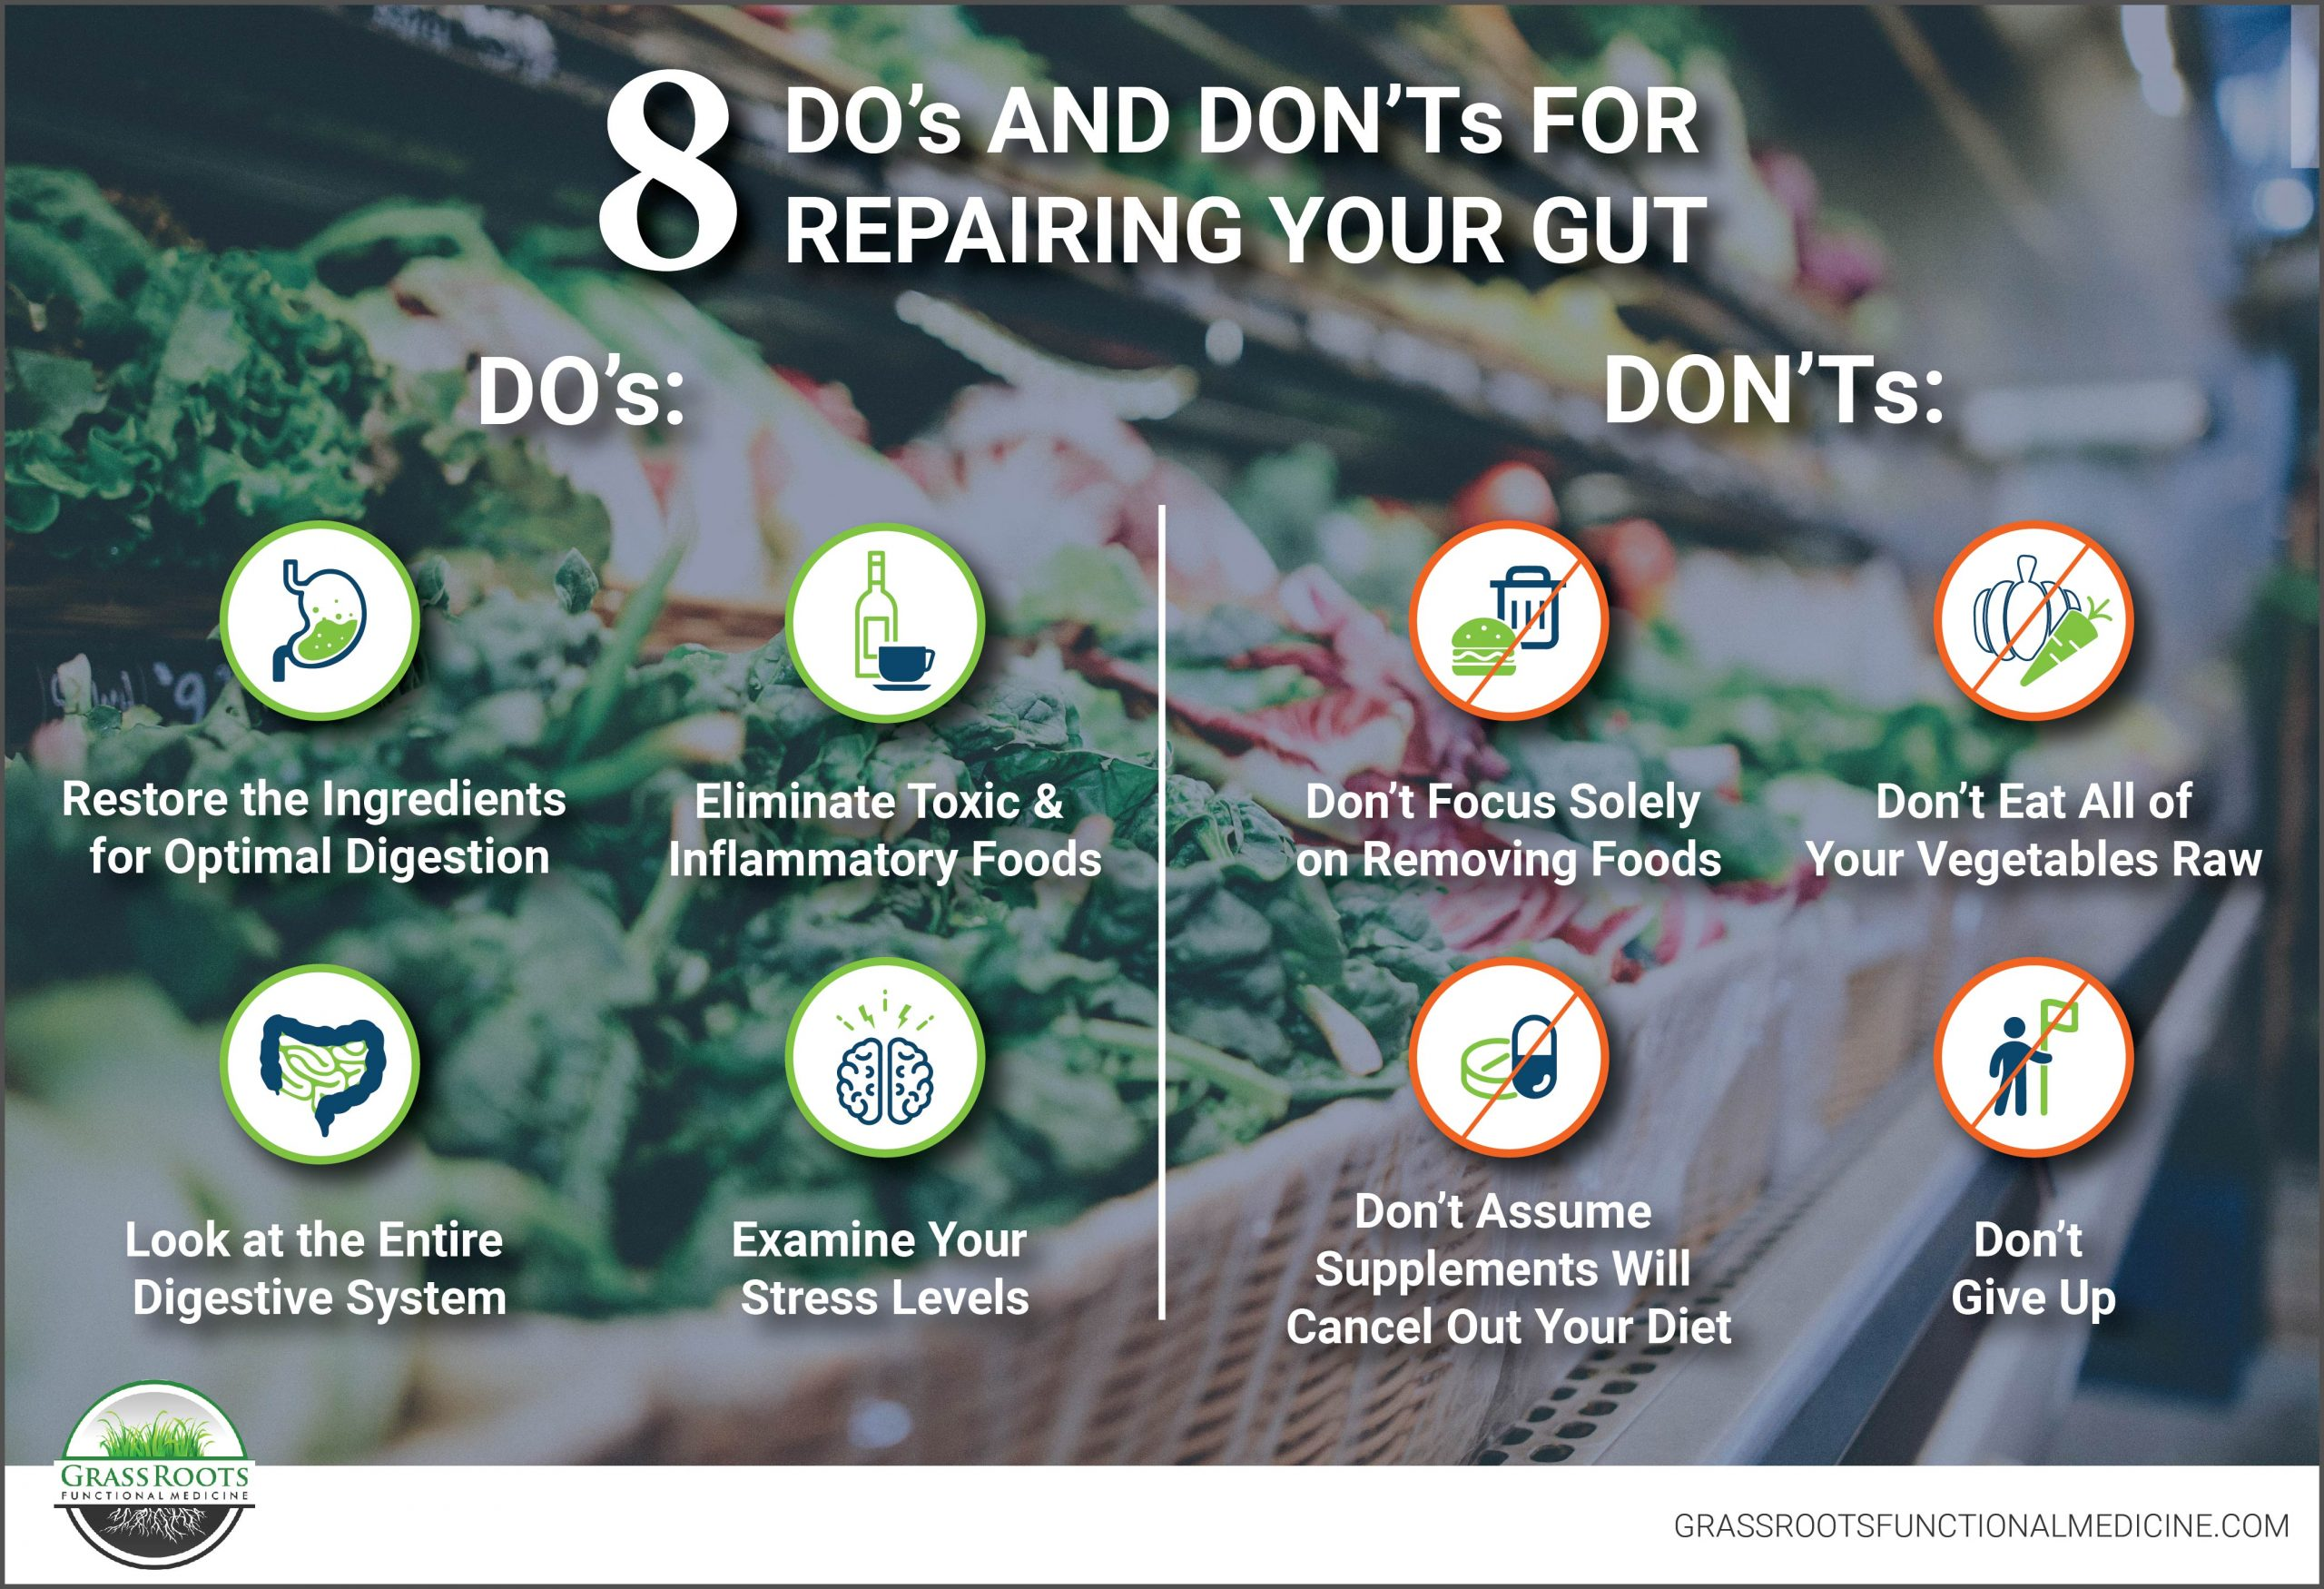 Do's and Don'ts for Repairing Your Gut